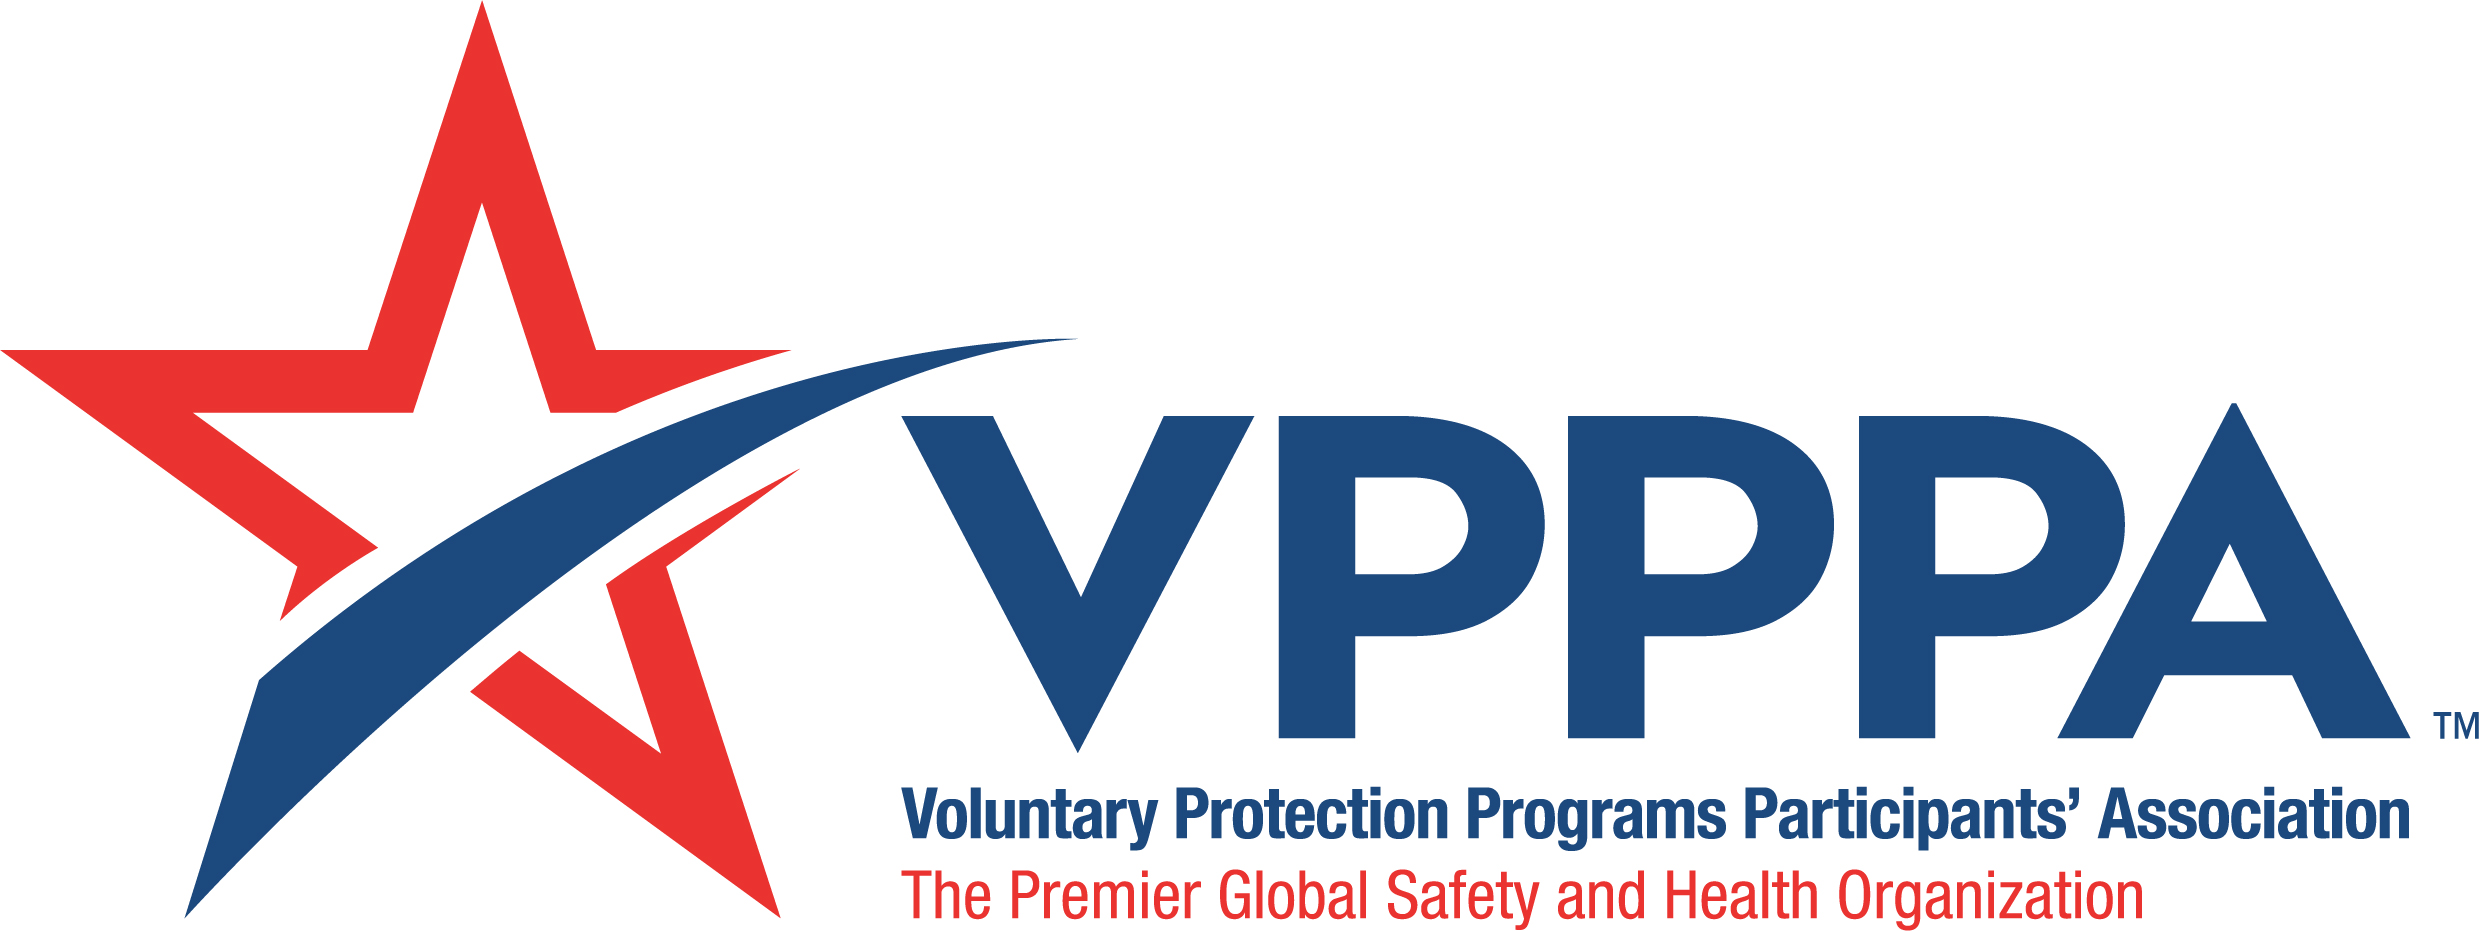 VPP - Voluntary Protection Programs Participants' Association - The Premier Global Safety and Health Organization